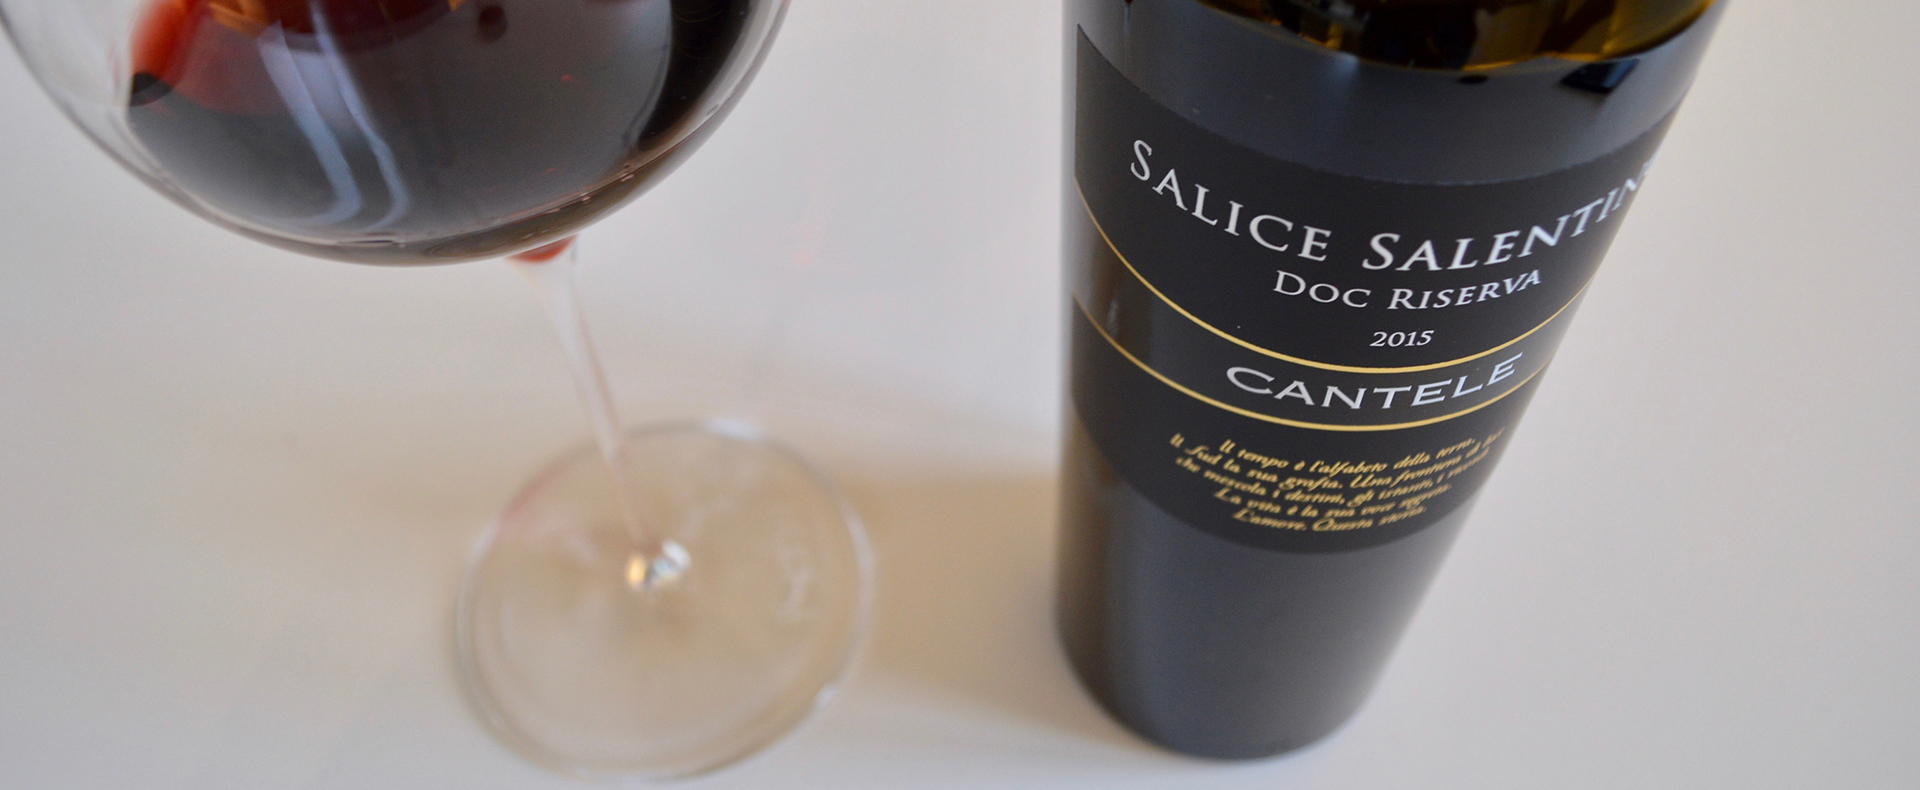 Wine Folly — the number one wine blog in the world — recommends Cantele Salice Salentino